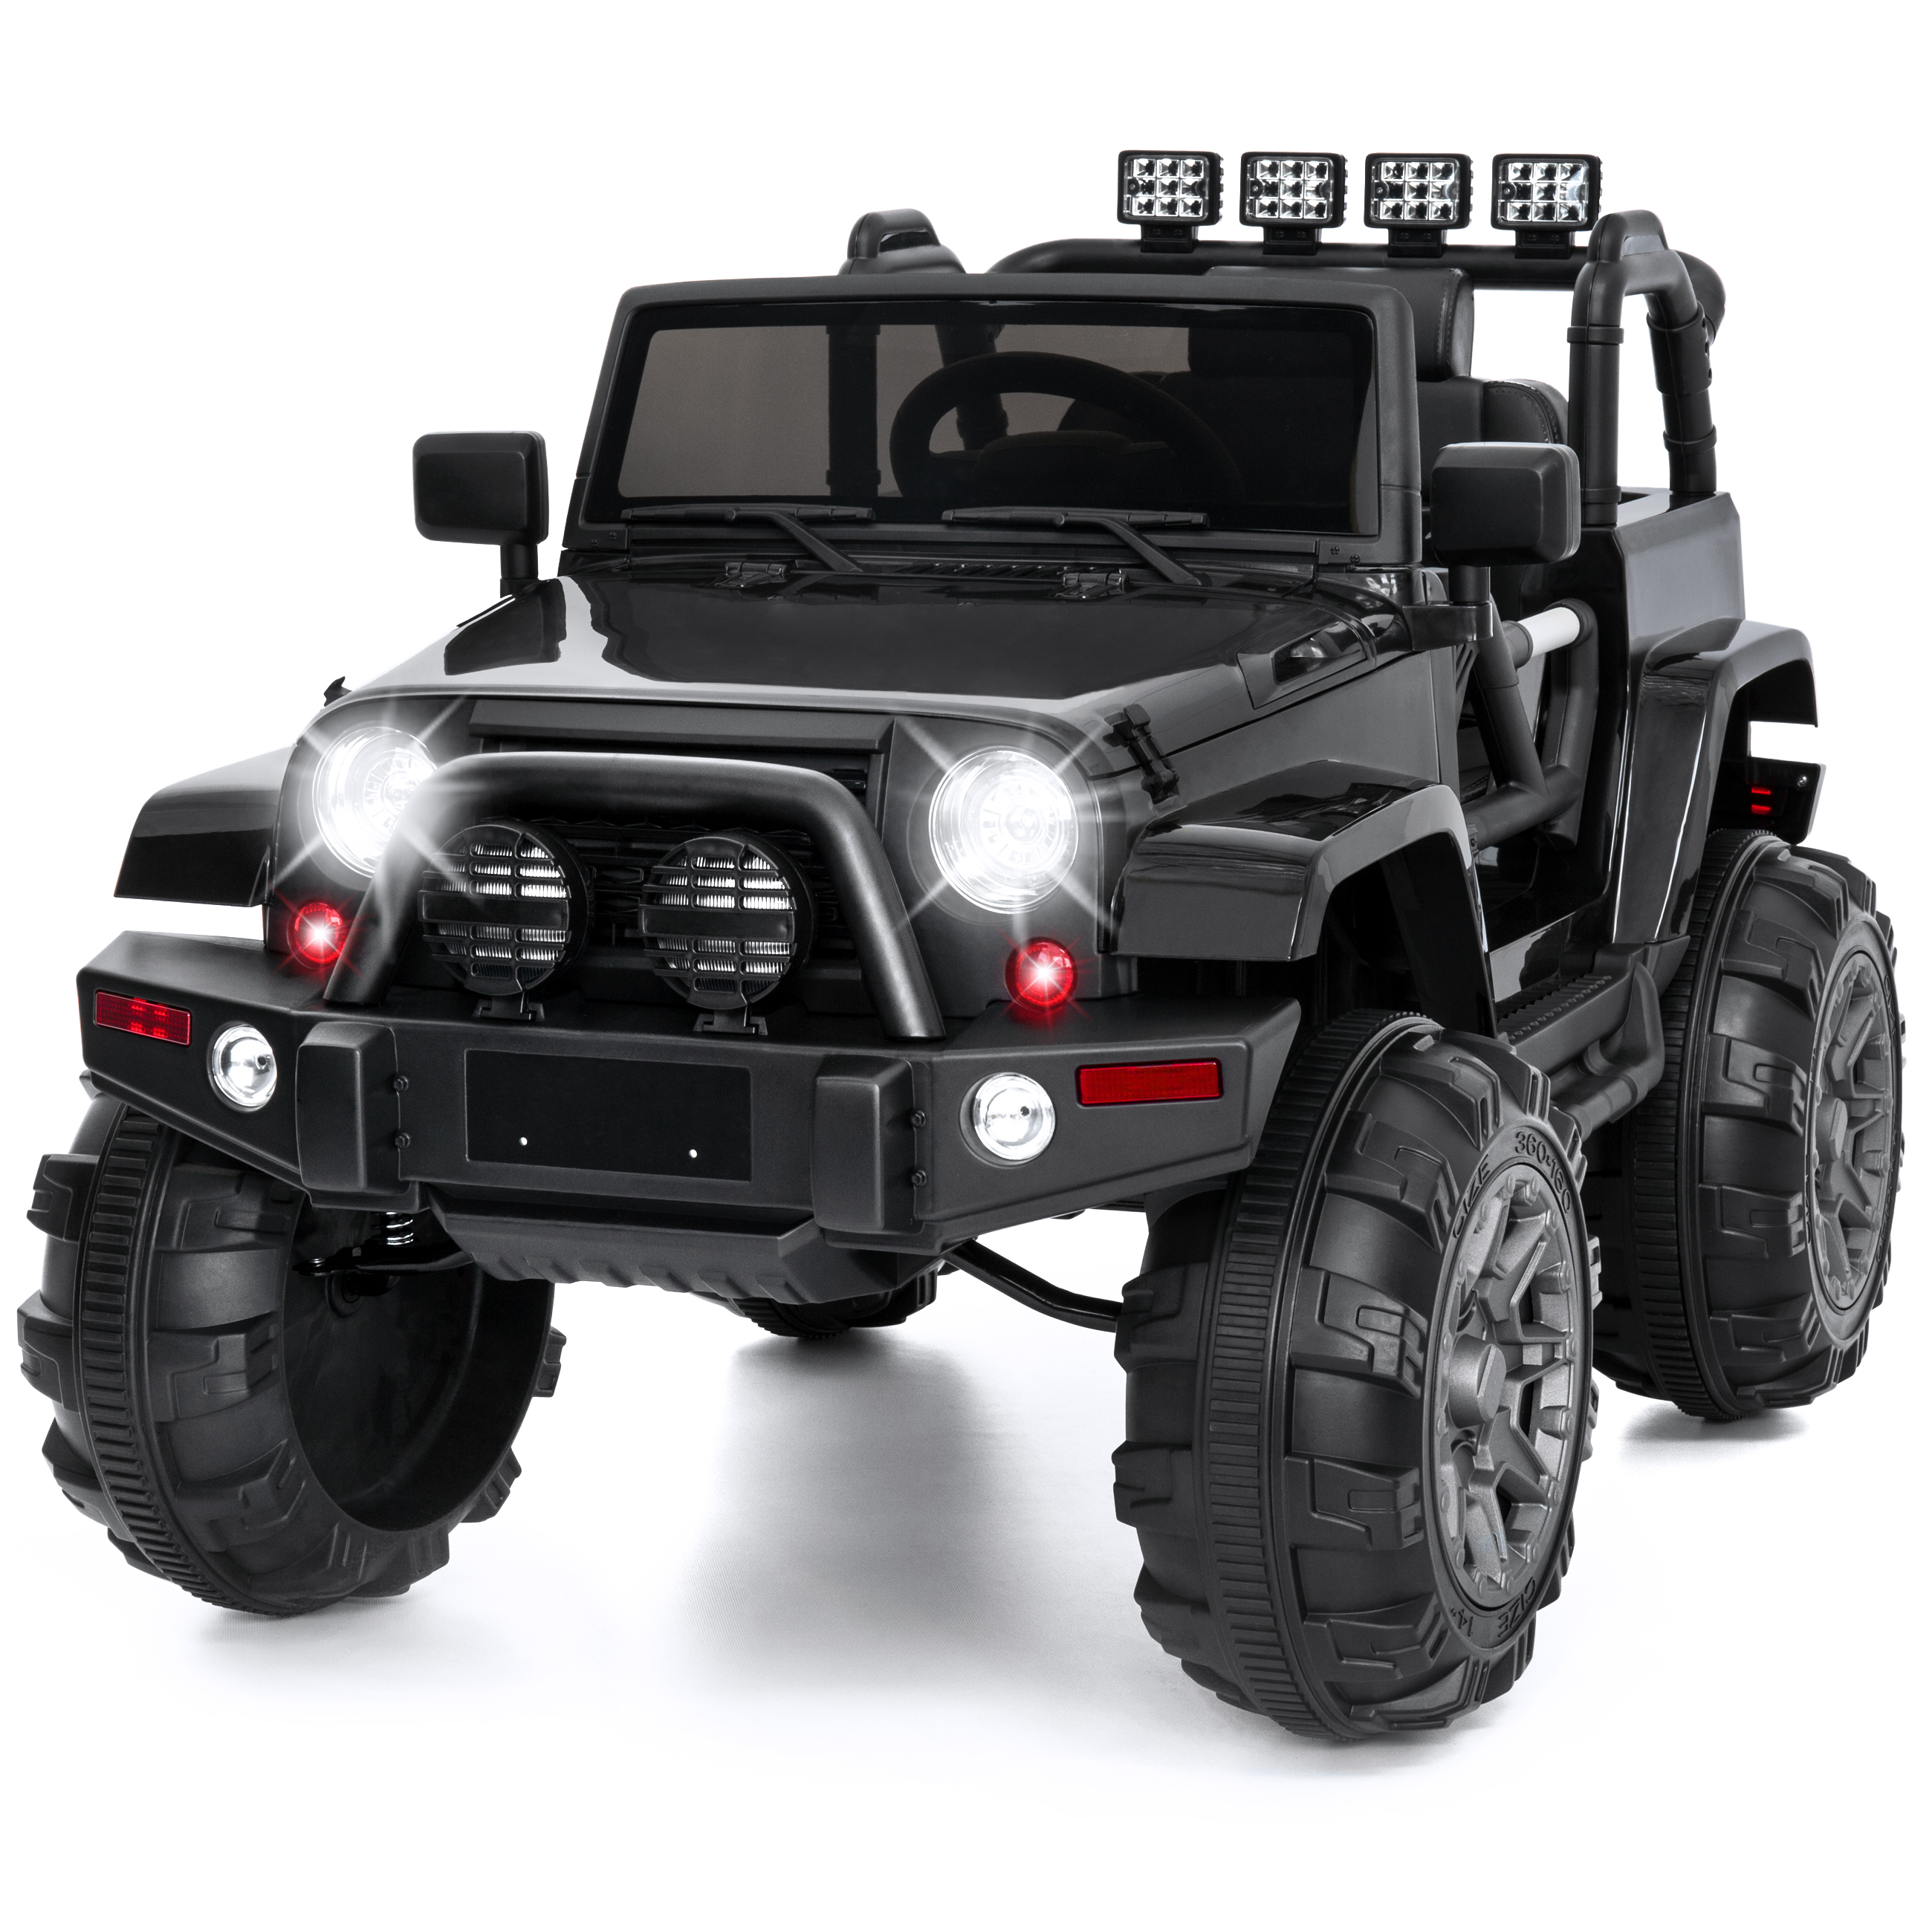 Best Choice Products 12V Kids Powered RC Ride-On Truck Car w/ Remote Control, 3 Speeds, Spring Suspension, LED Lights, AUX - Black